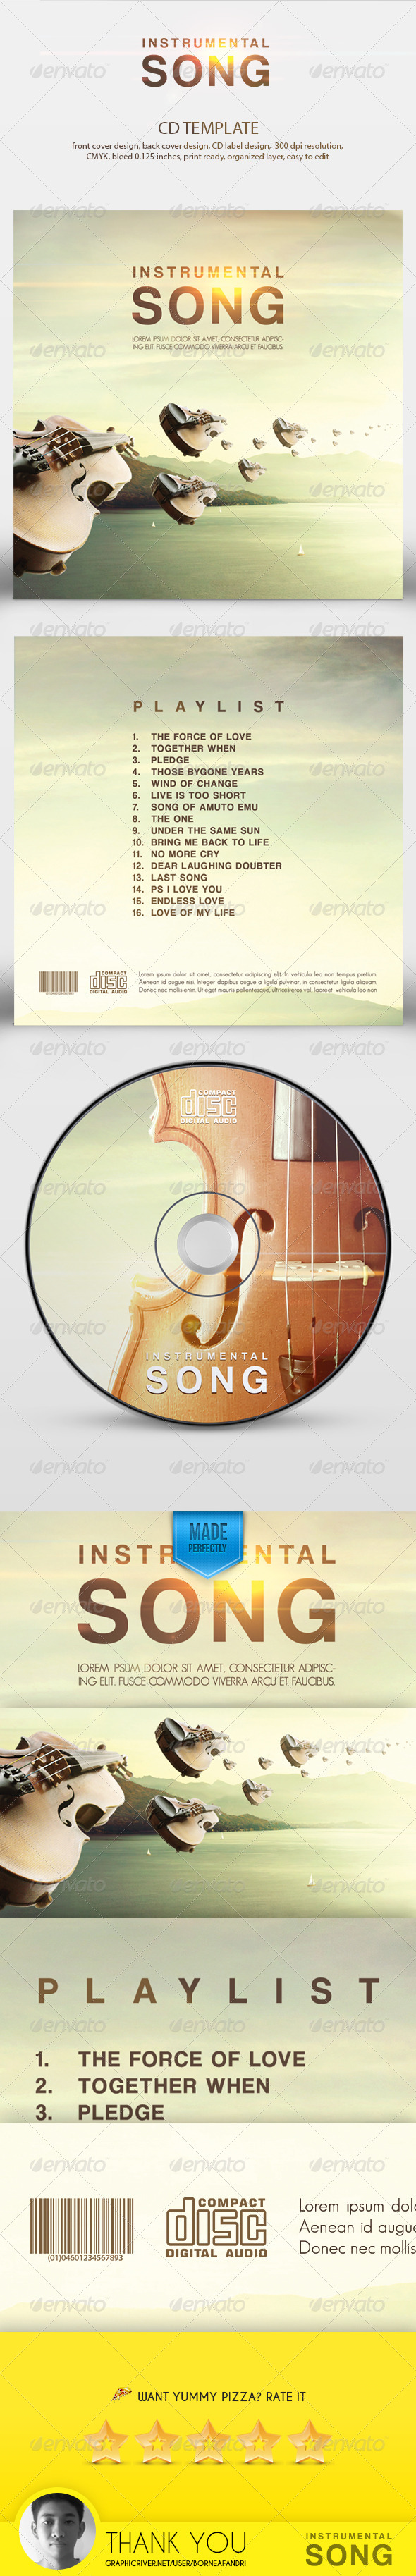 Instrumental Song CD Template